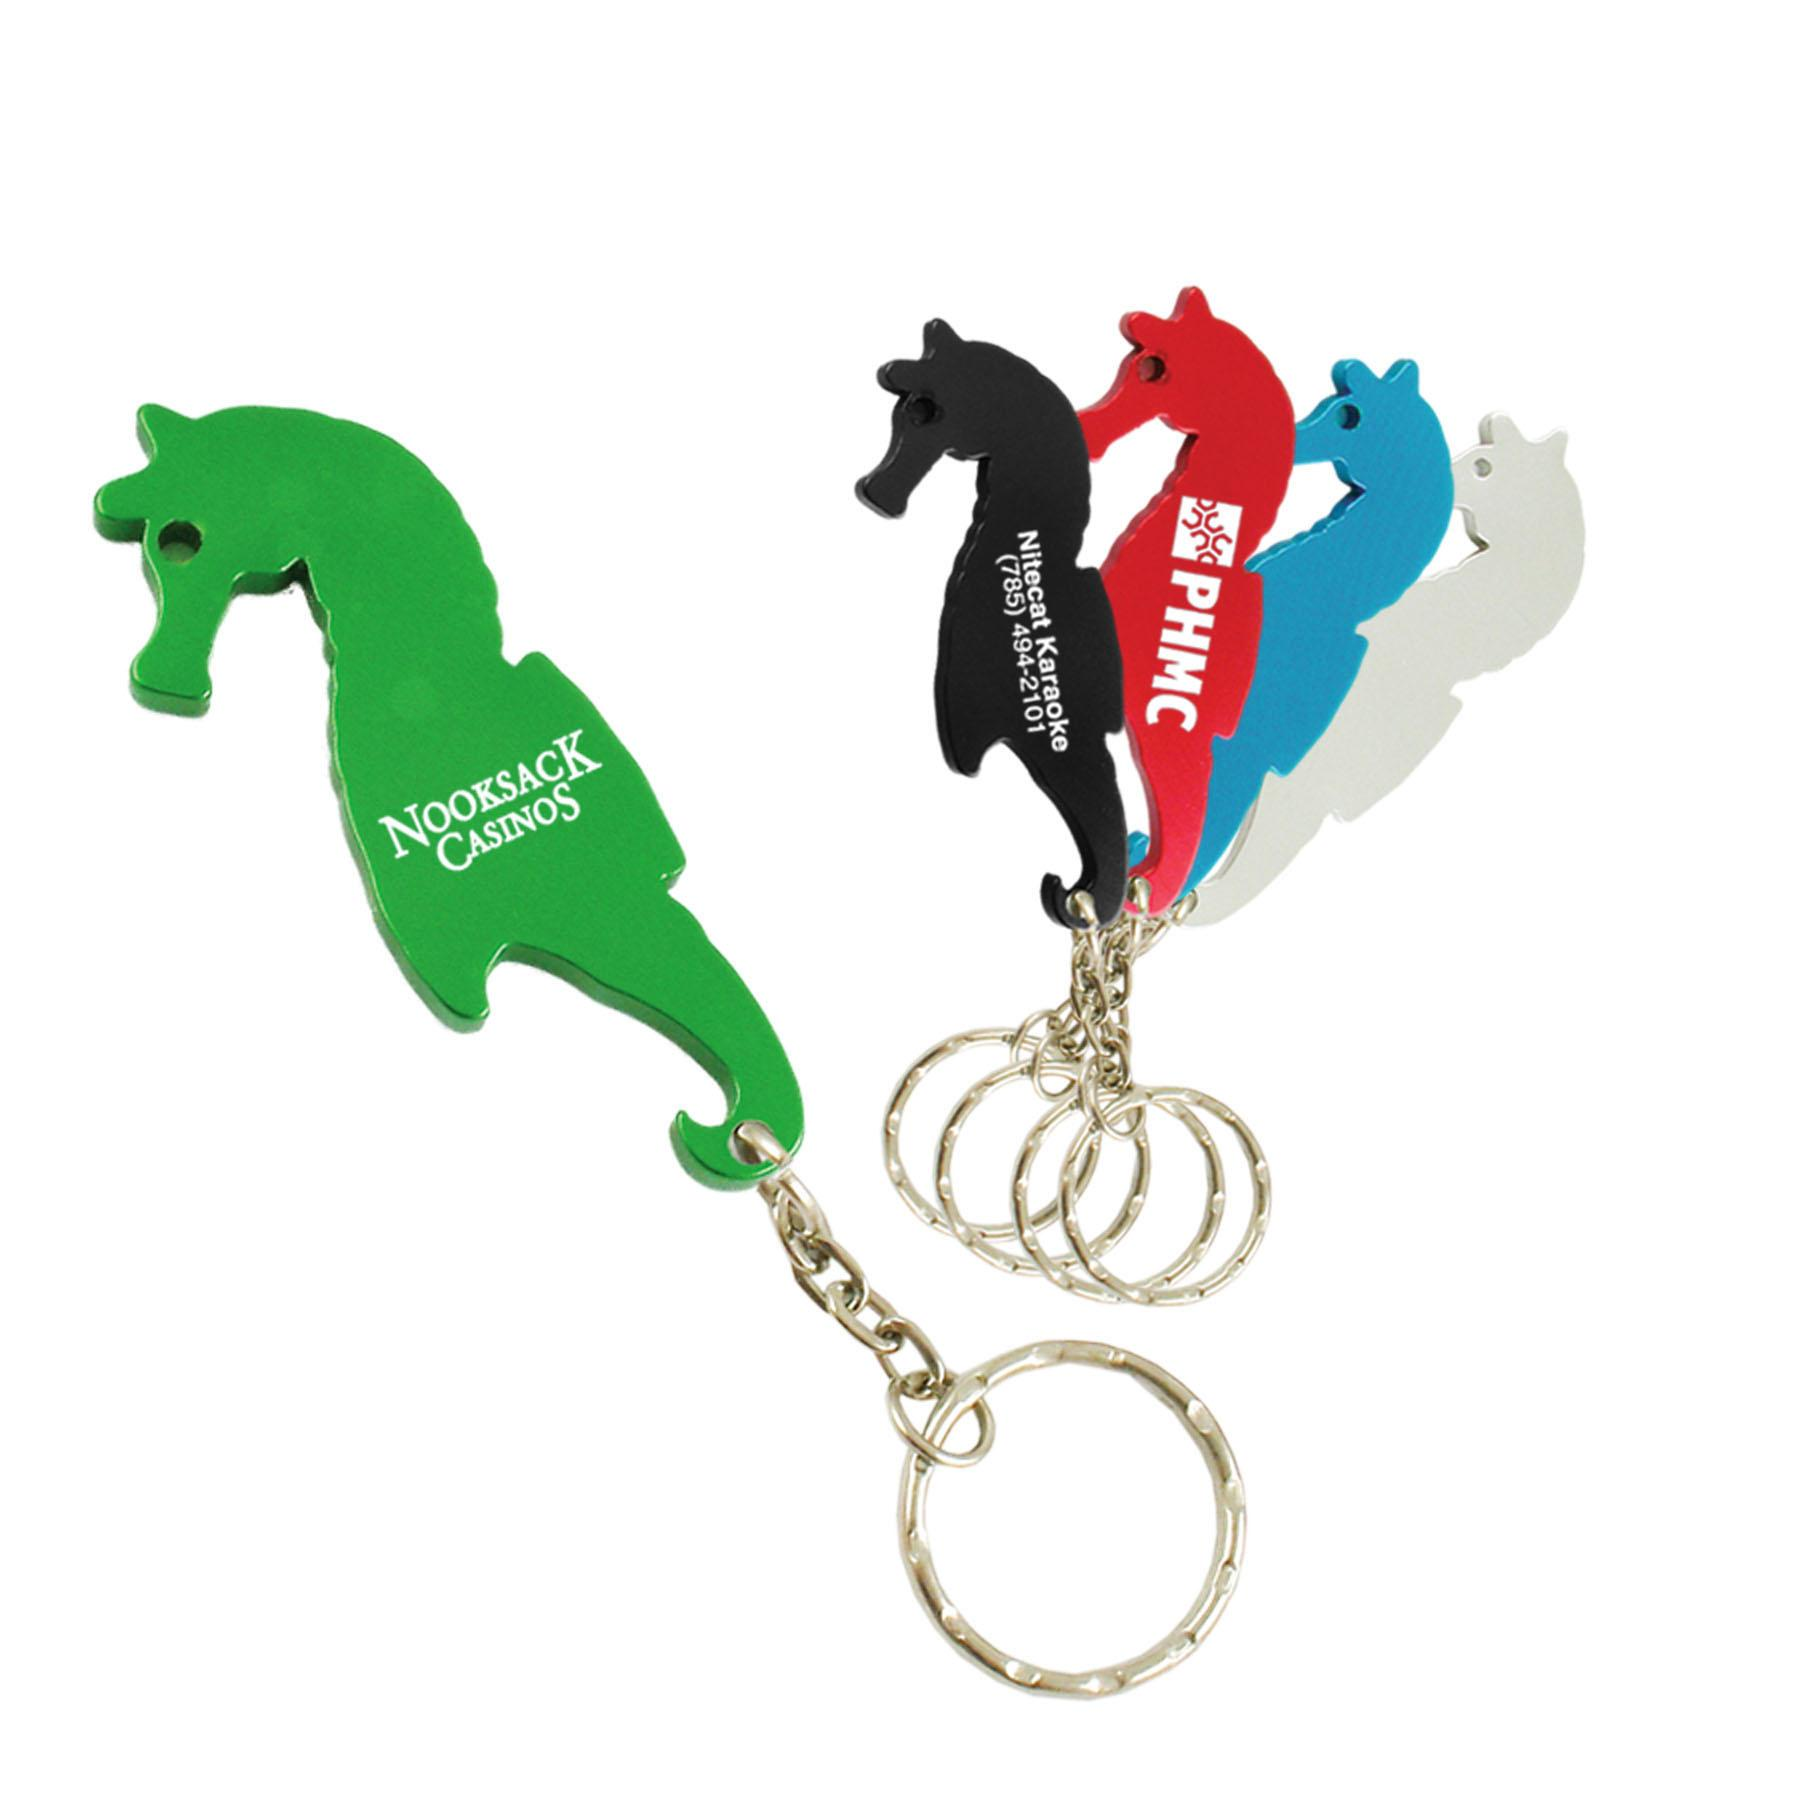 sea horse bottle opener w key ring custom imprinted brava. Black Bedroom Furniture Sets. Home Design Ideas